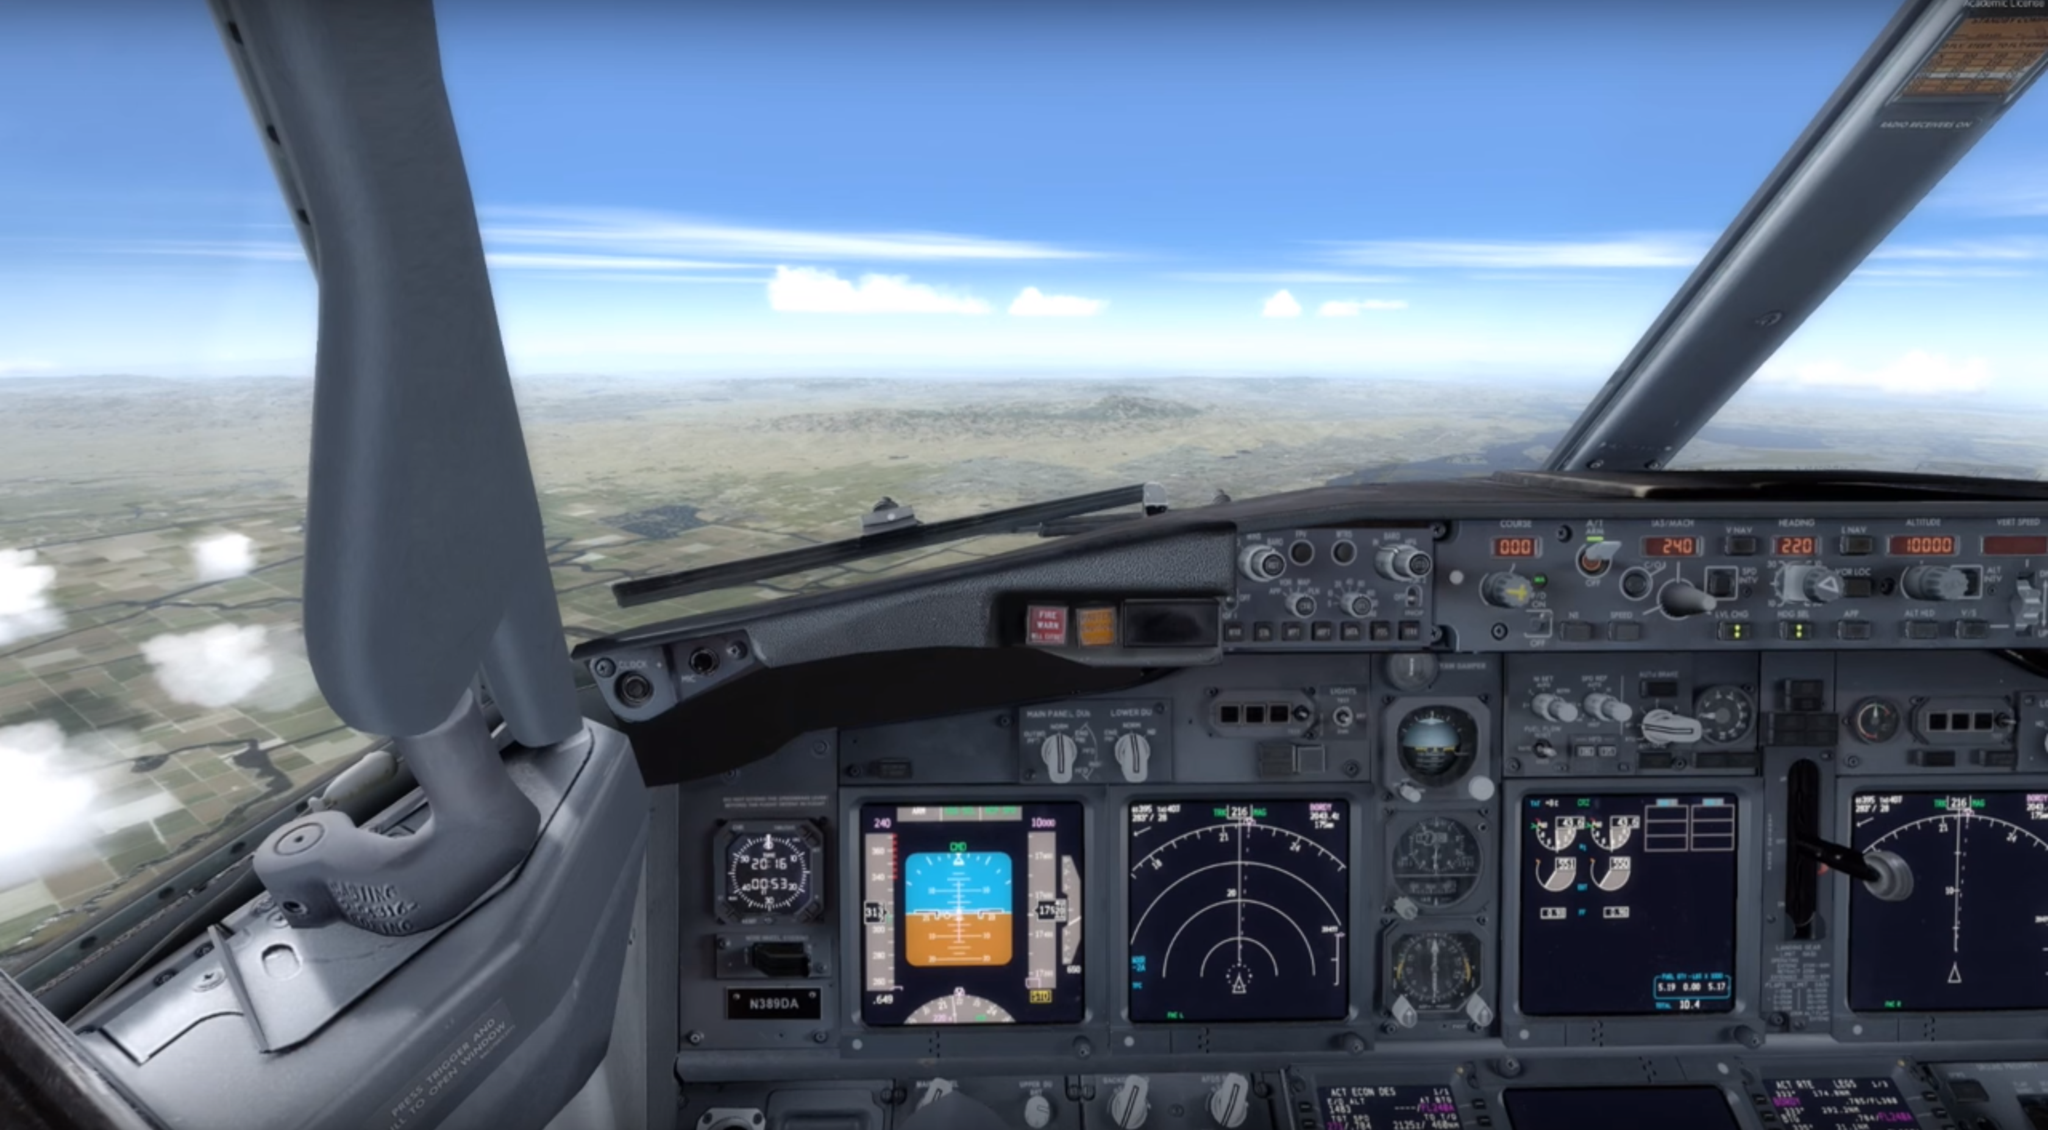 GUIDE: How to Land a 737 In An Emergency If The Pilots Can Not (Video)